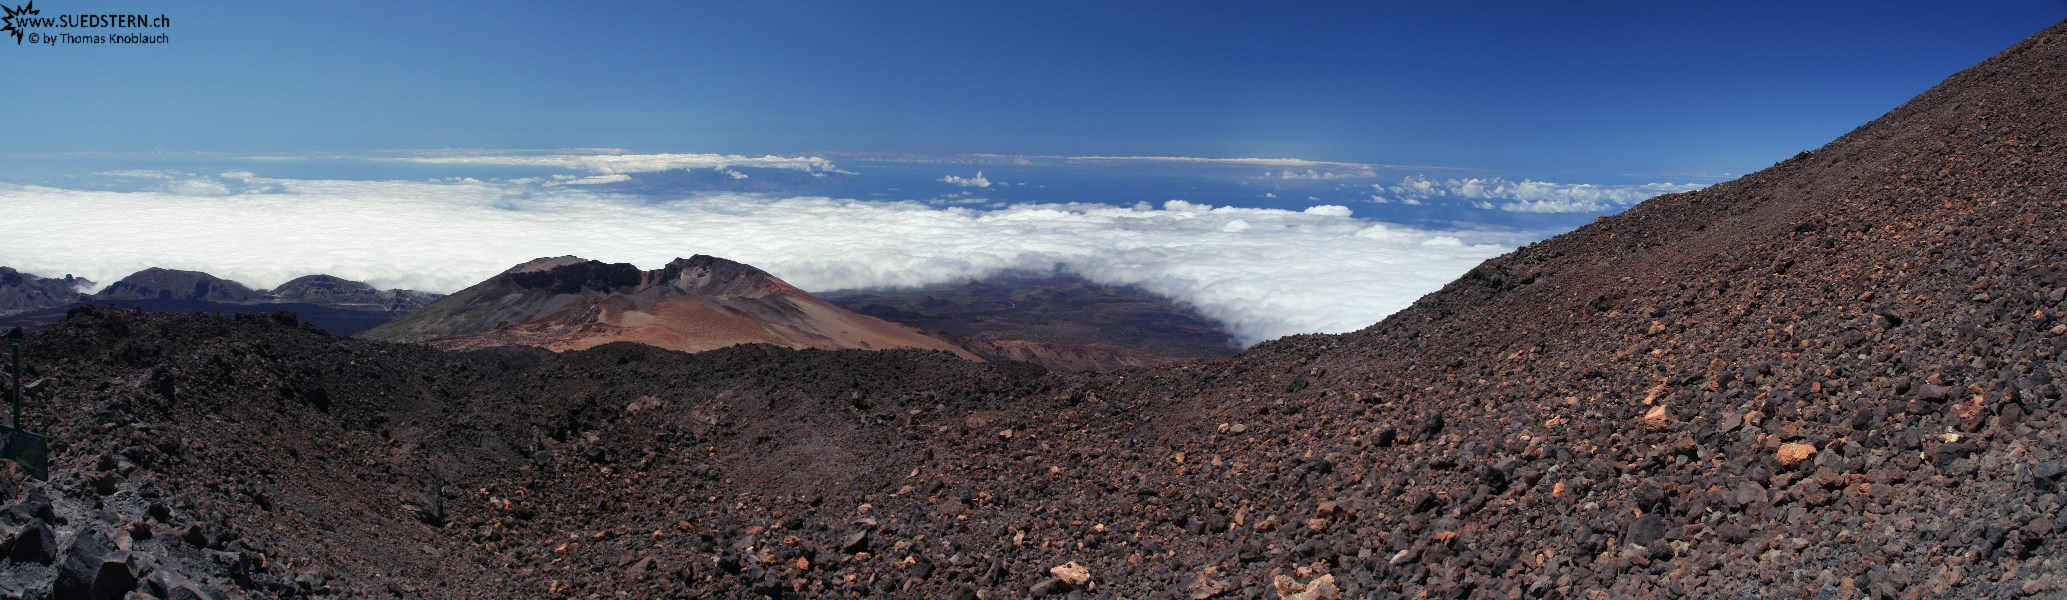 2007-09-06 - 15 - Teneriffa, Pico Viejo seen from Teide mountain